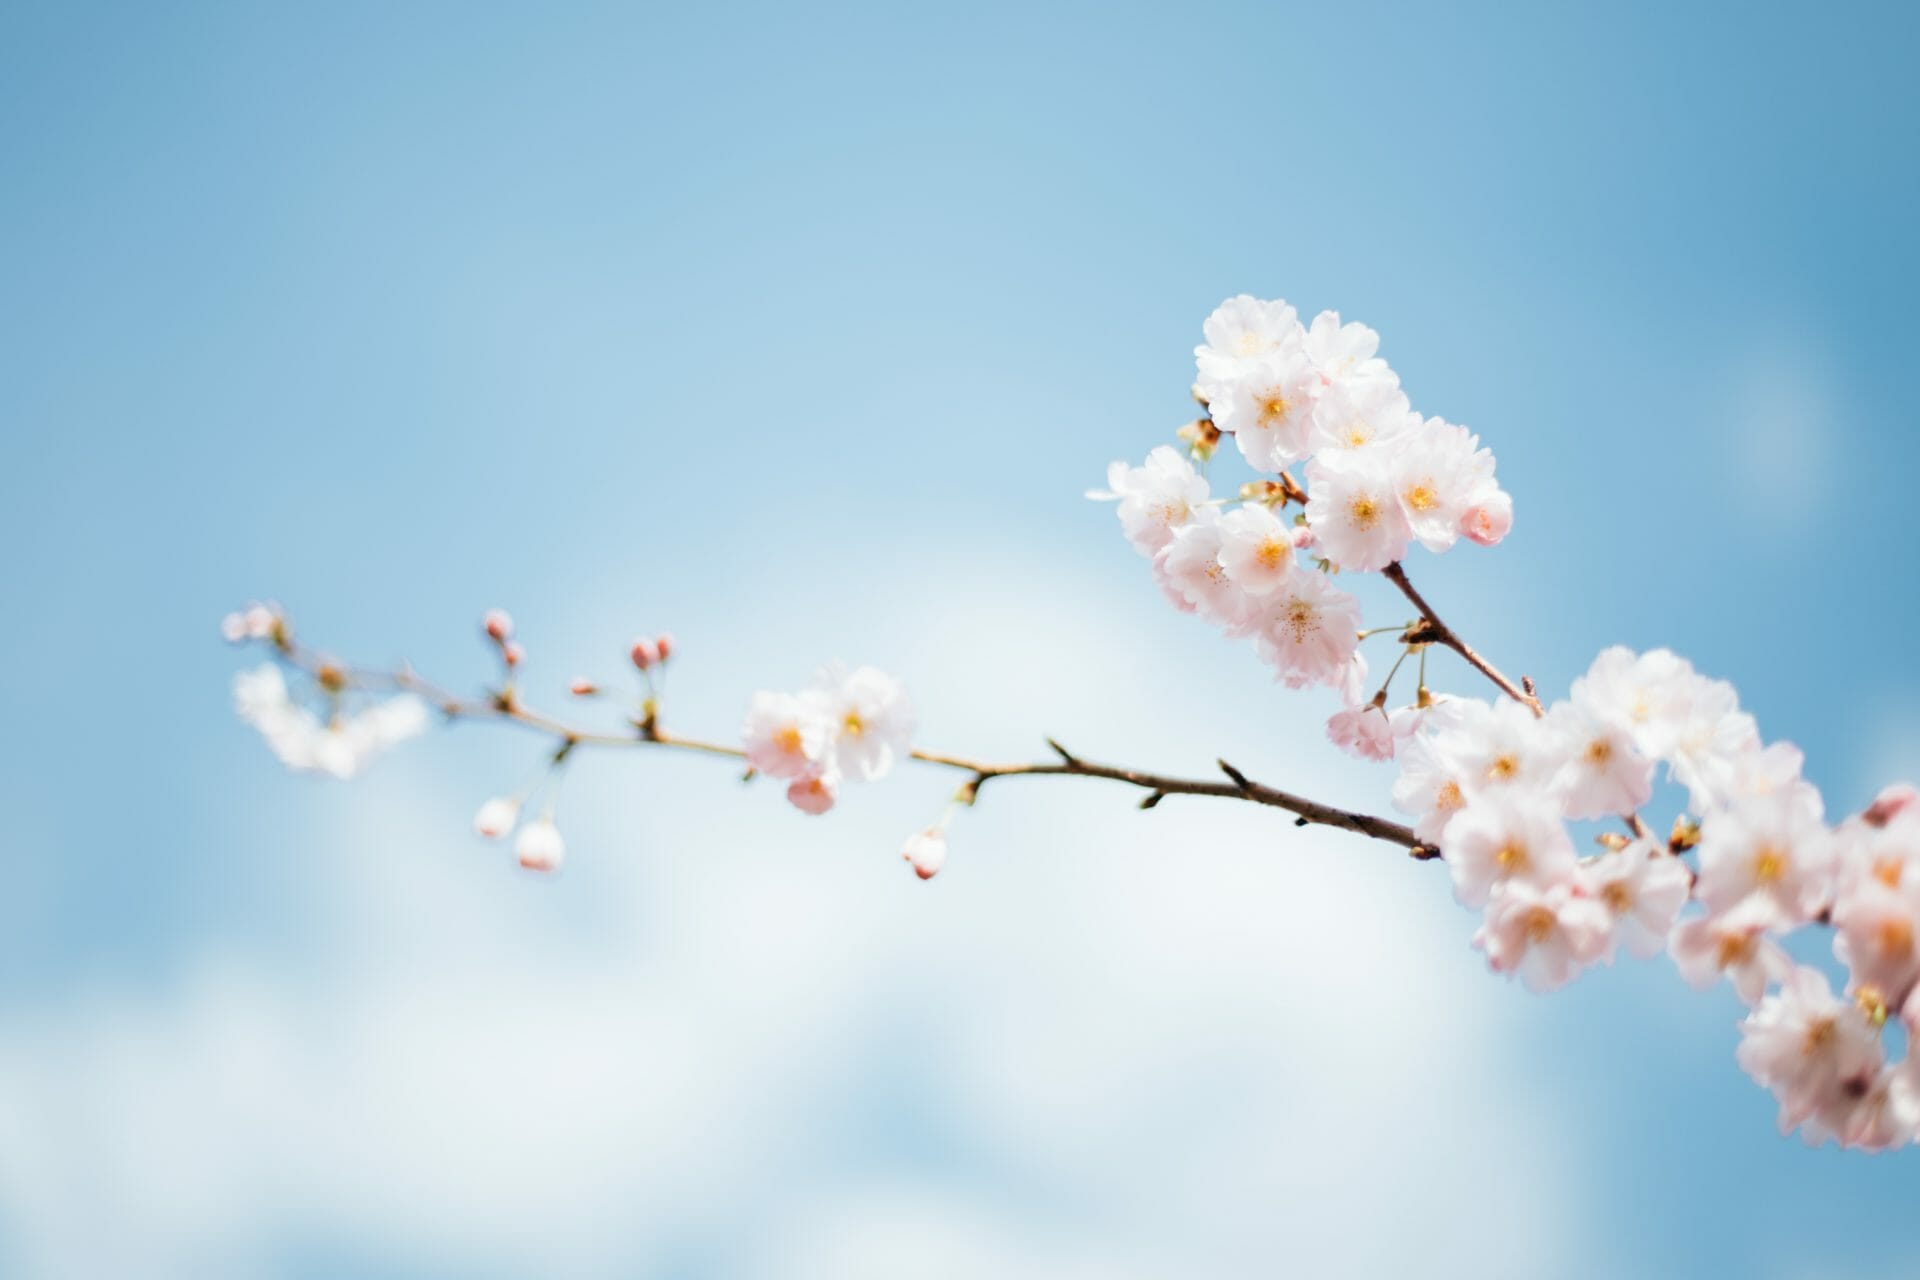 Picture of spring blossoms for Real Estate News for Investors Podcast Episode #740